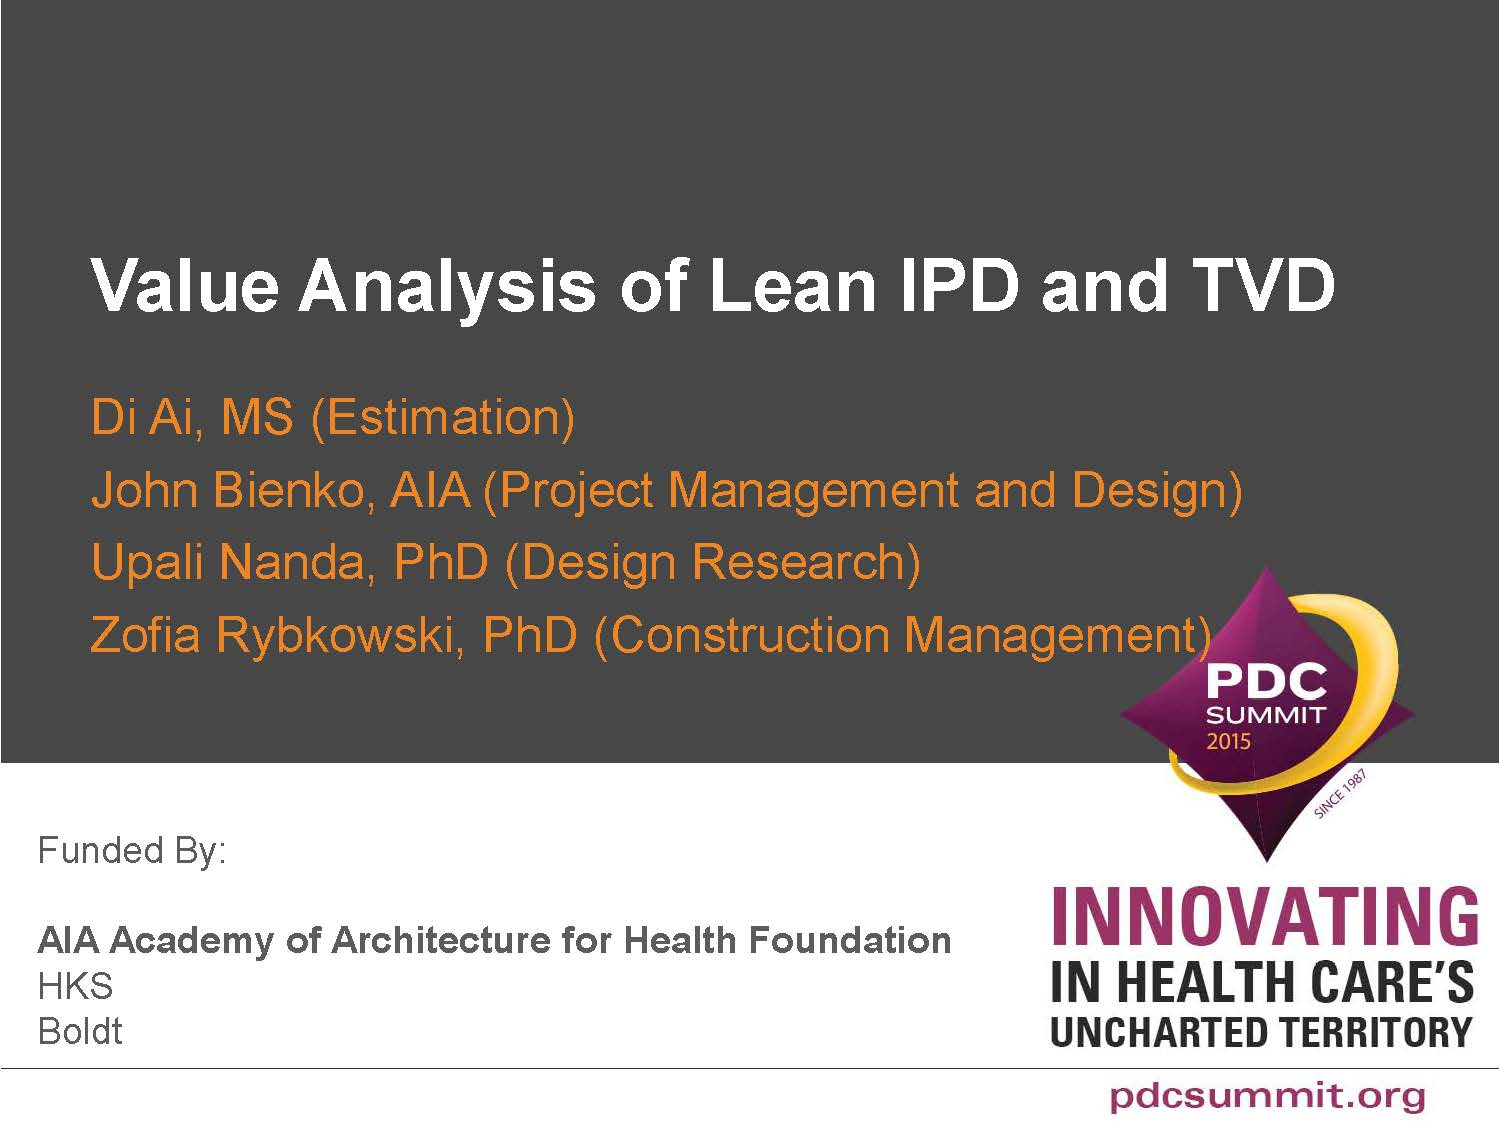 A Value Analysis of Lean IPD: Lessons Learned in the Development of a Framework    Di Ai, John Bienko, Upali Nanda, and Zofia Rybkowski  Healthcare Facility Planning ,  Design, and Construction (PDC) Conference